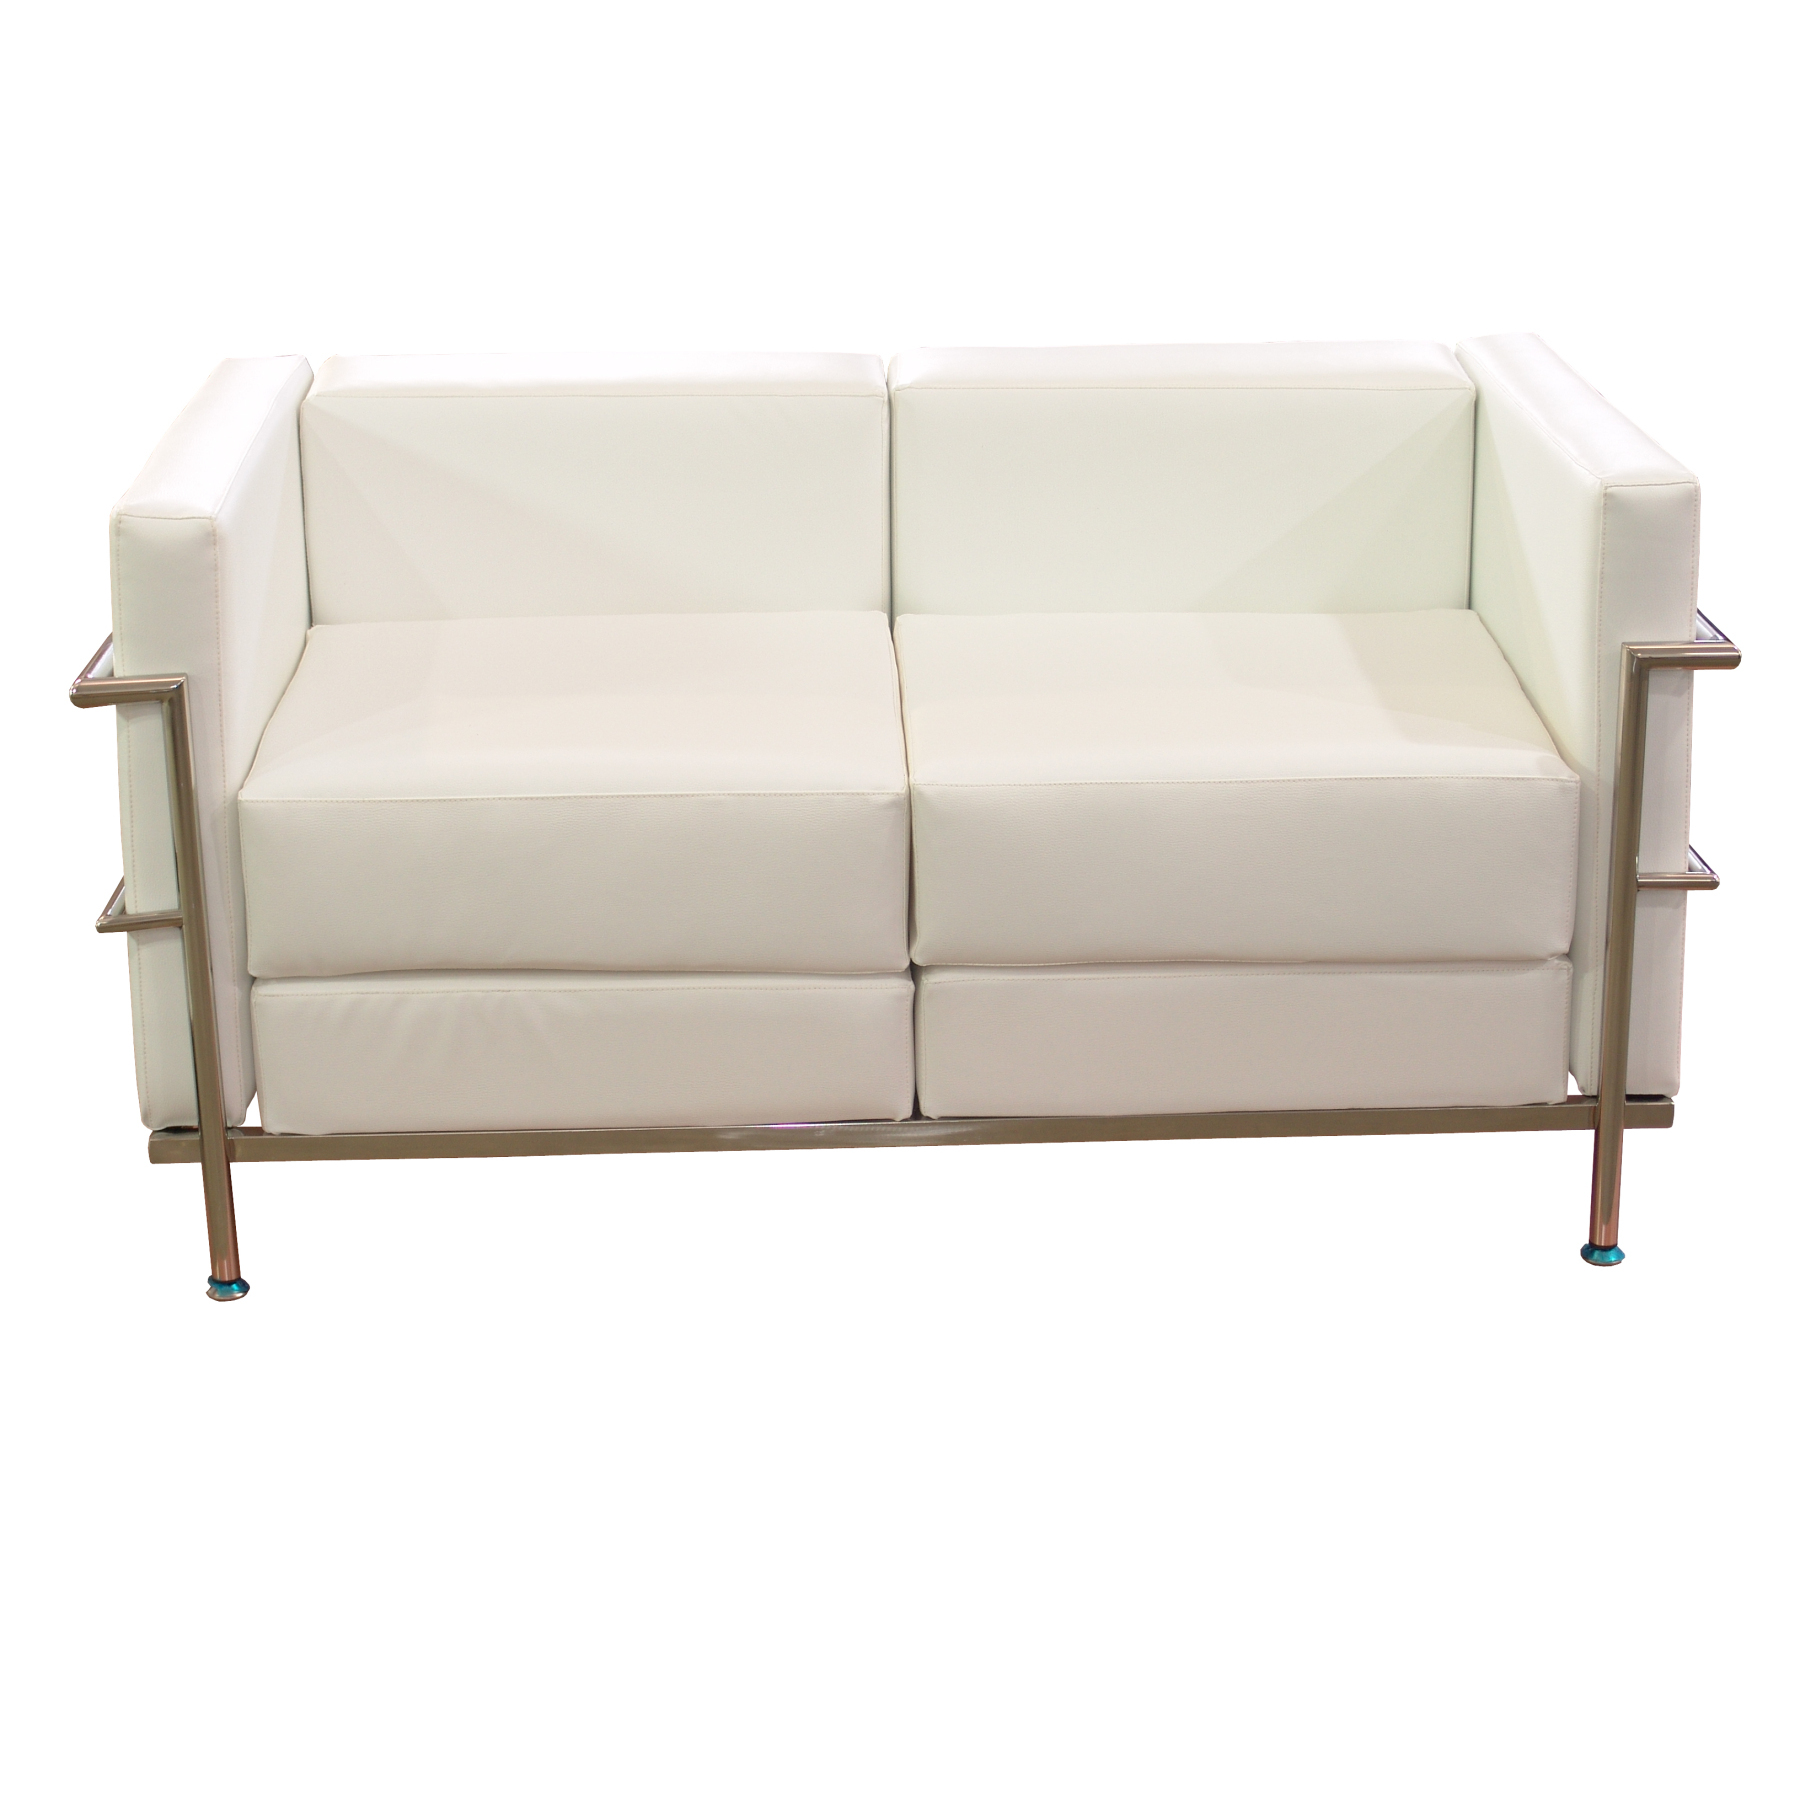 Sofa De Modulo/waiting Two Seater Upholstered In Similpiel White Color TAPHOLE AND CURLED Model Tarazona